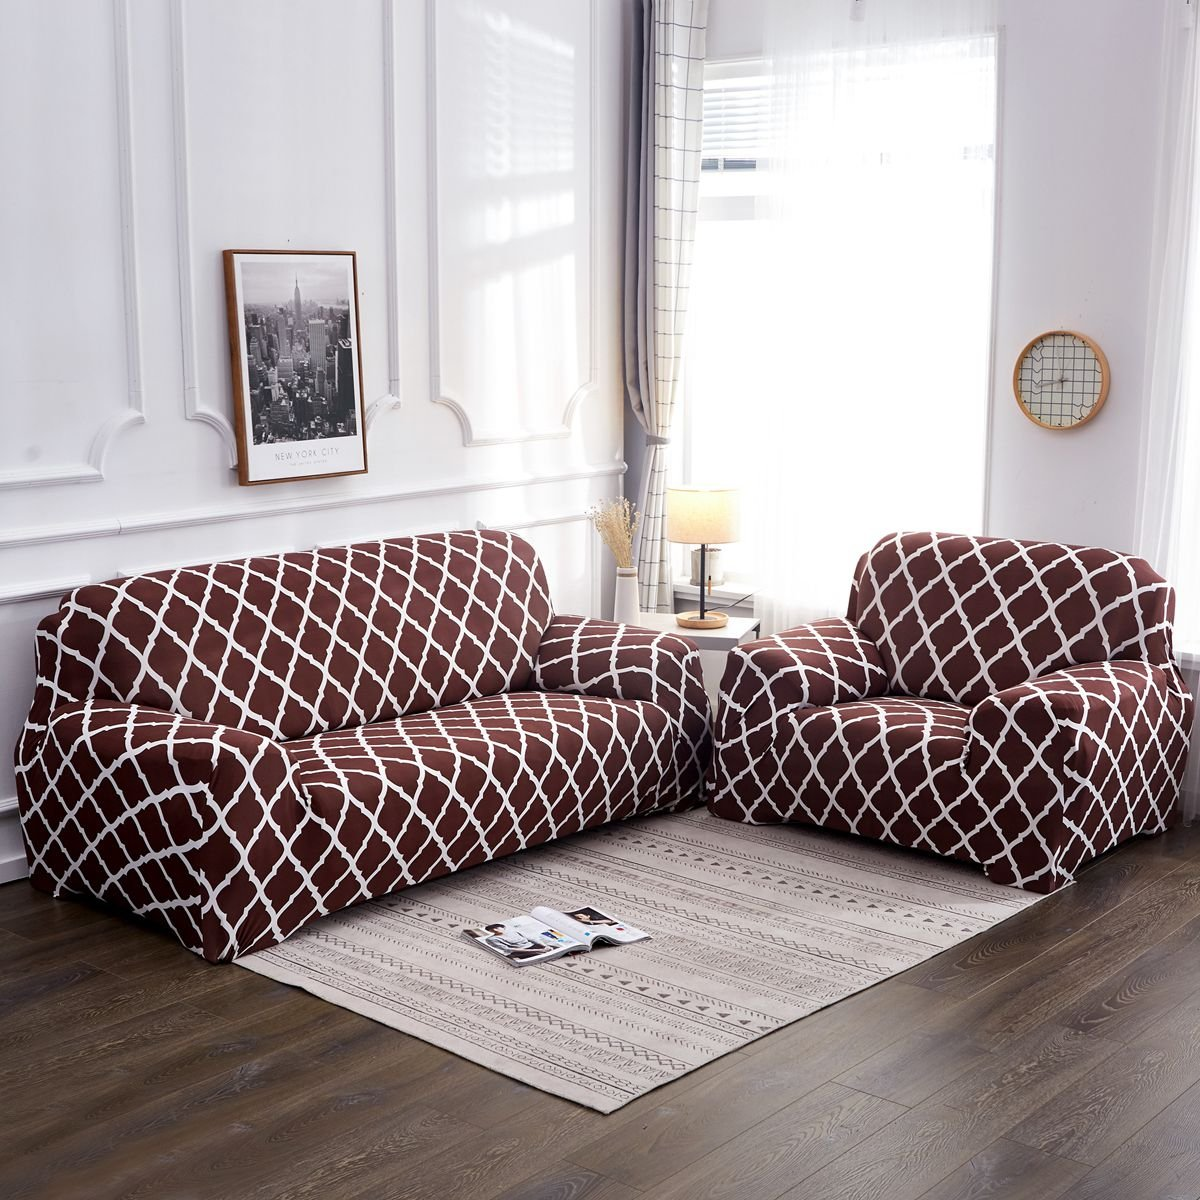 1 2 3 4 Seater Elastic Sofa Chair Covers Slipcover Settee Stretch Floral Couch Protector